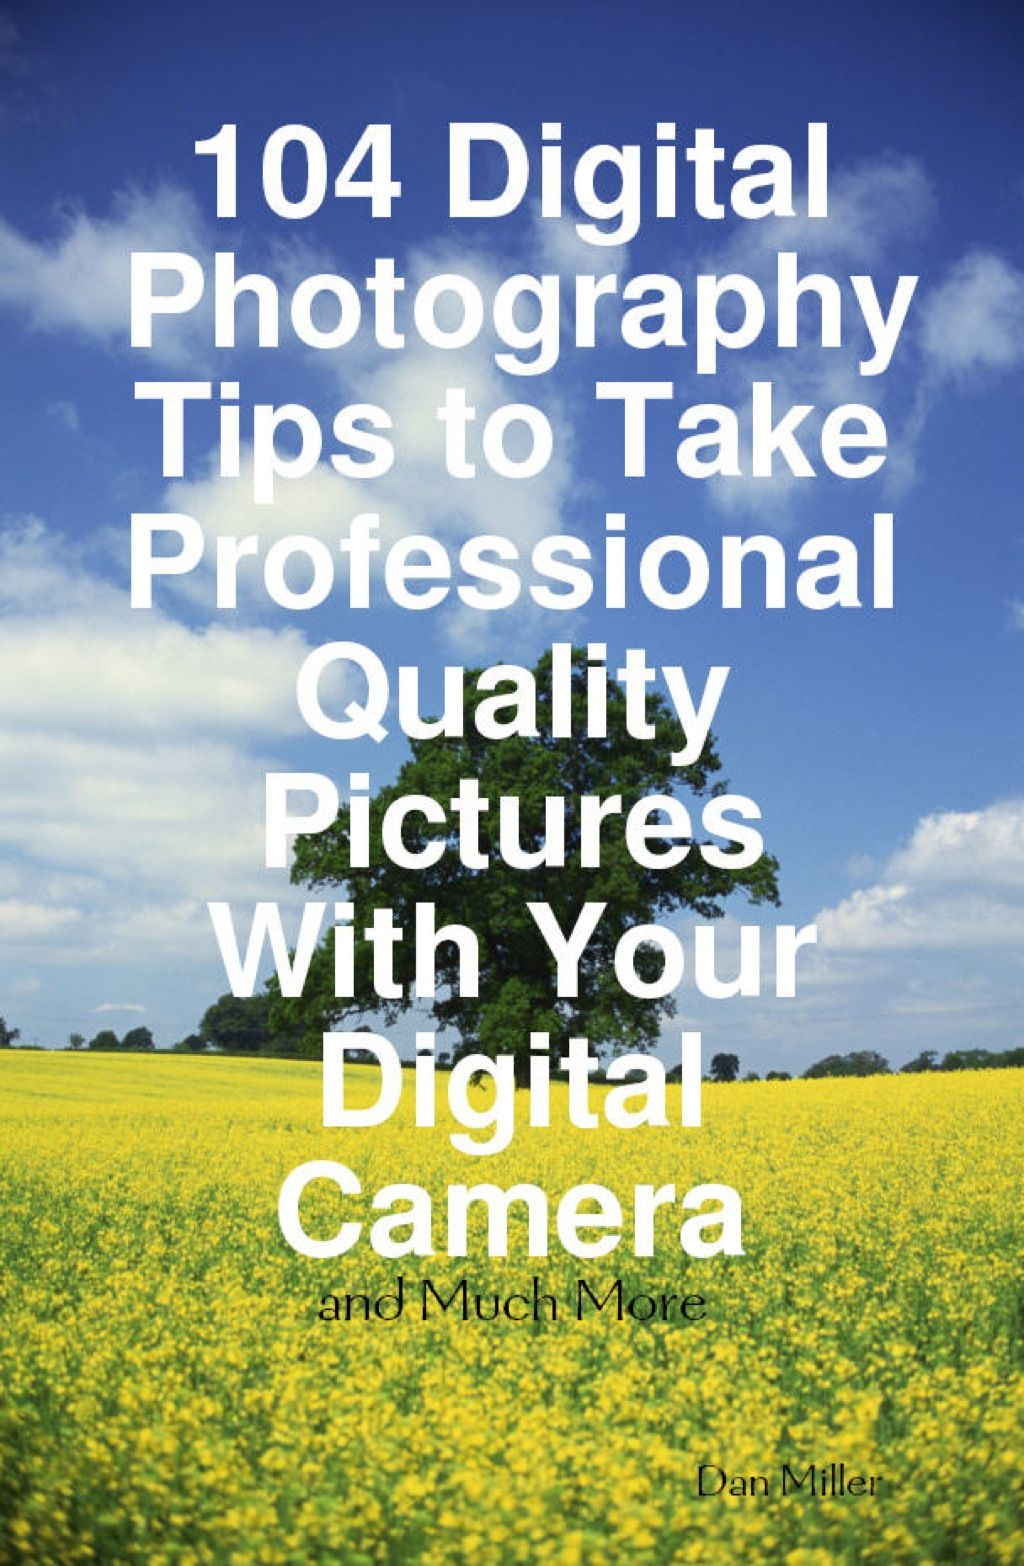 104 Digital Photography Tips to Take Professional Quality Pictures With Your Digital Camera – and Much More (eBook)